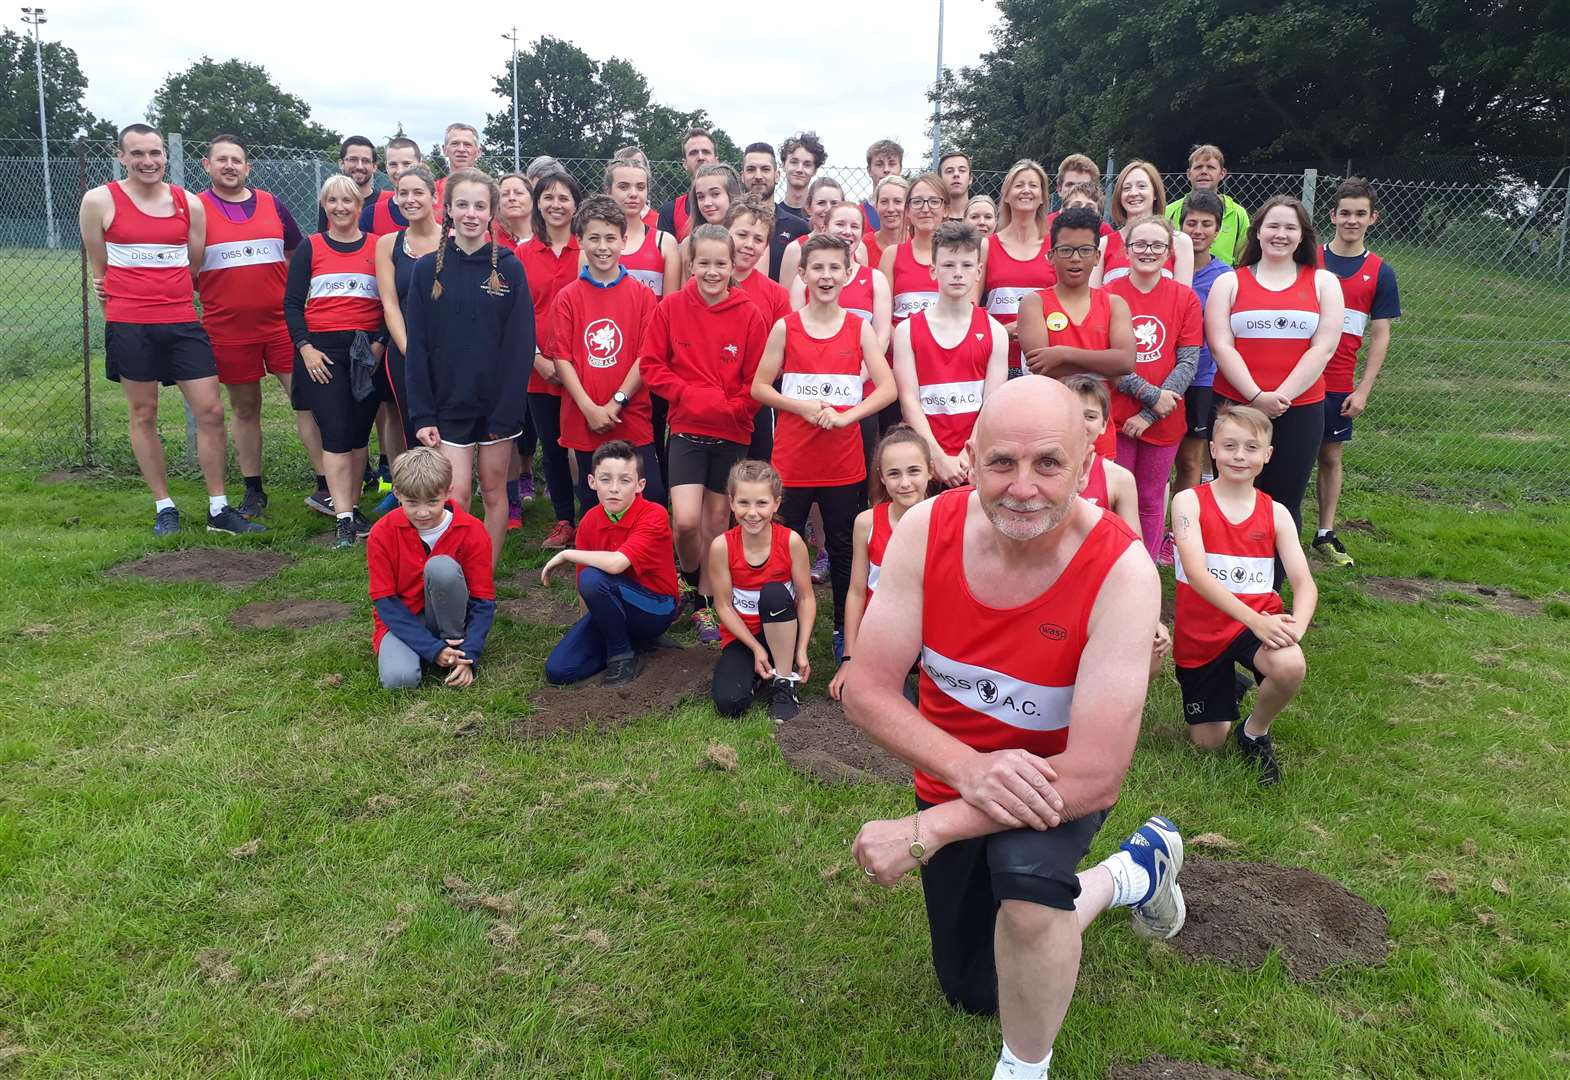 Stroke victim encourages others to take up athletics